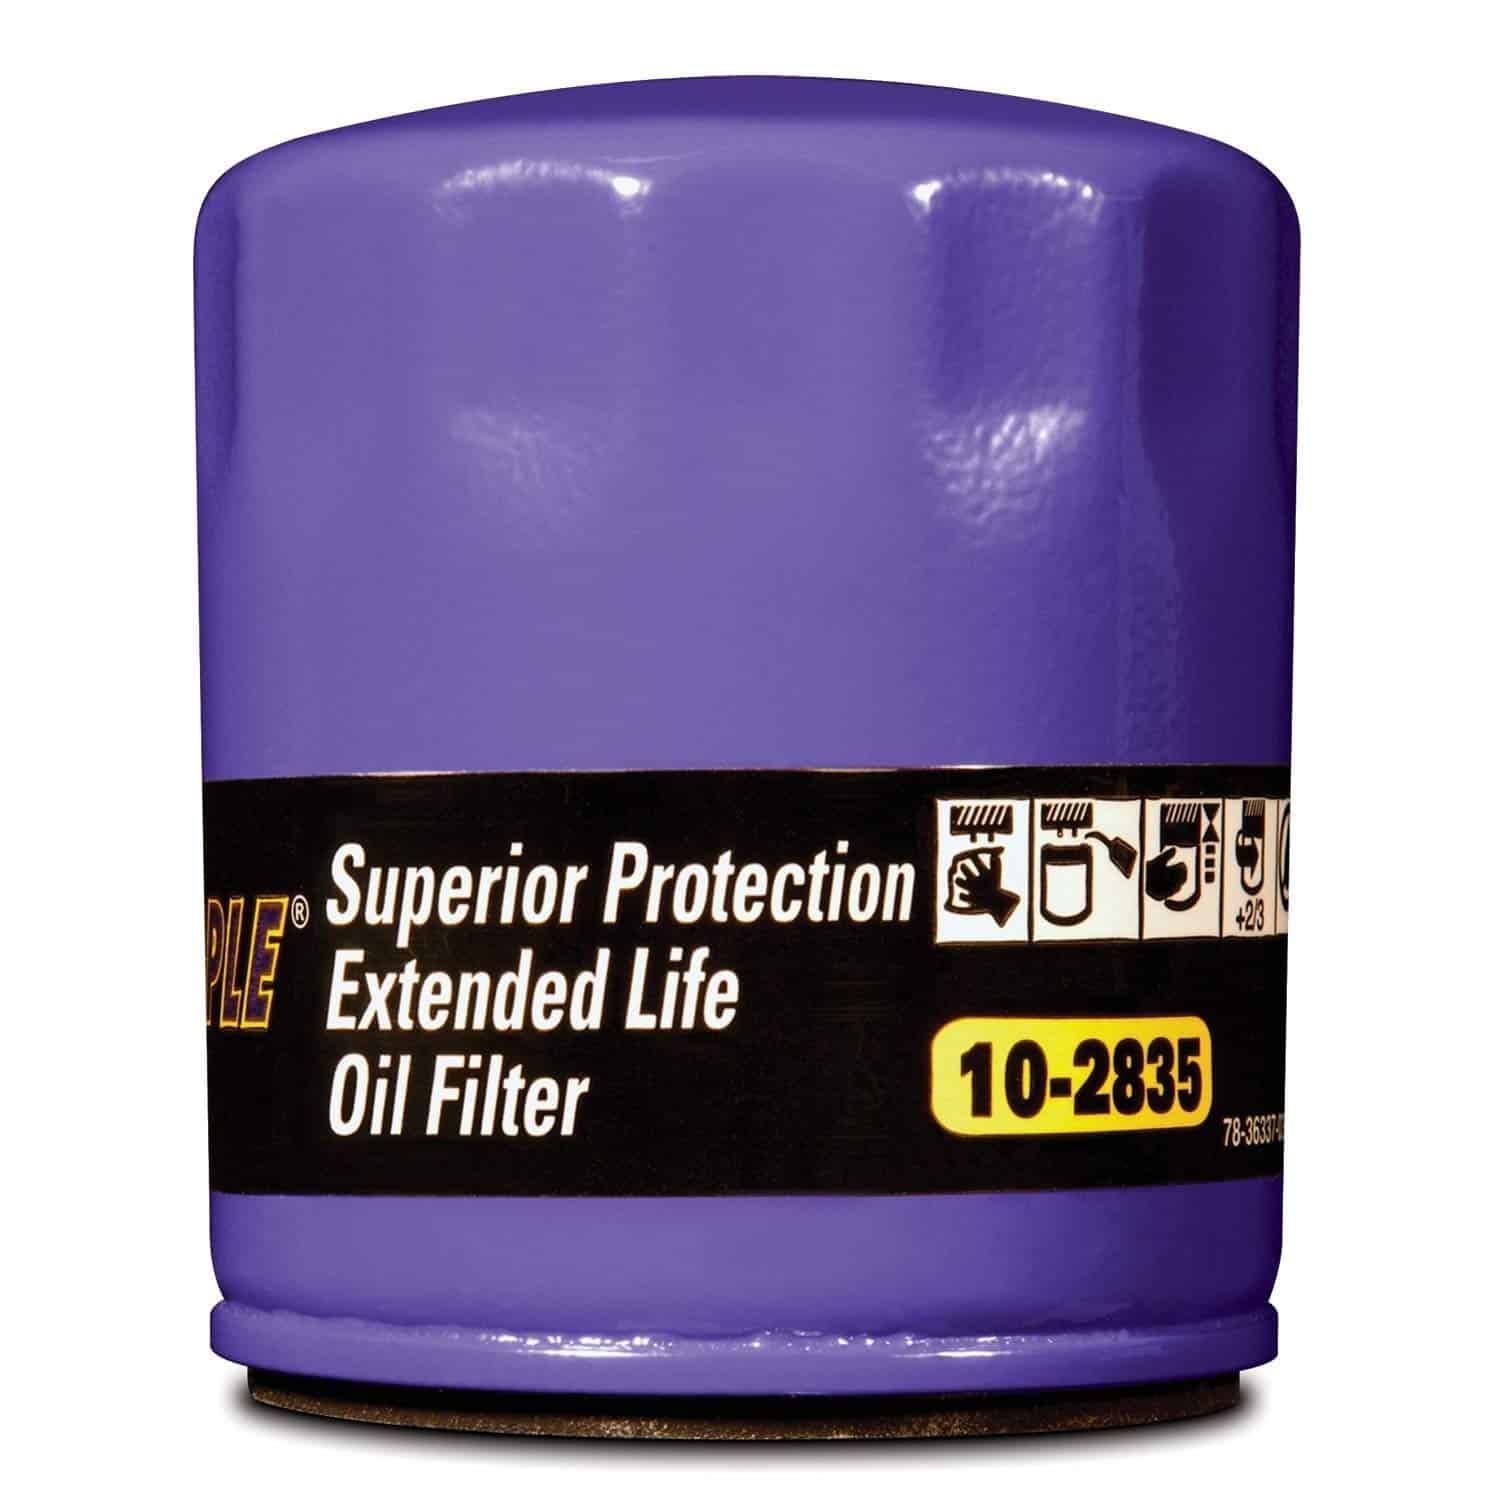 Royal Purple 341777 341777 Extended Life Oil Filter - 10-2835